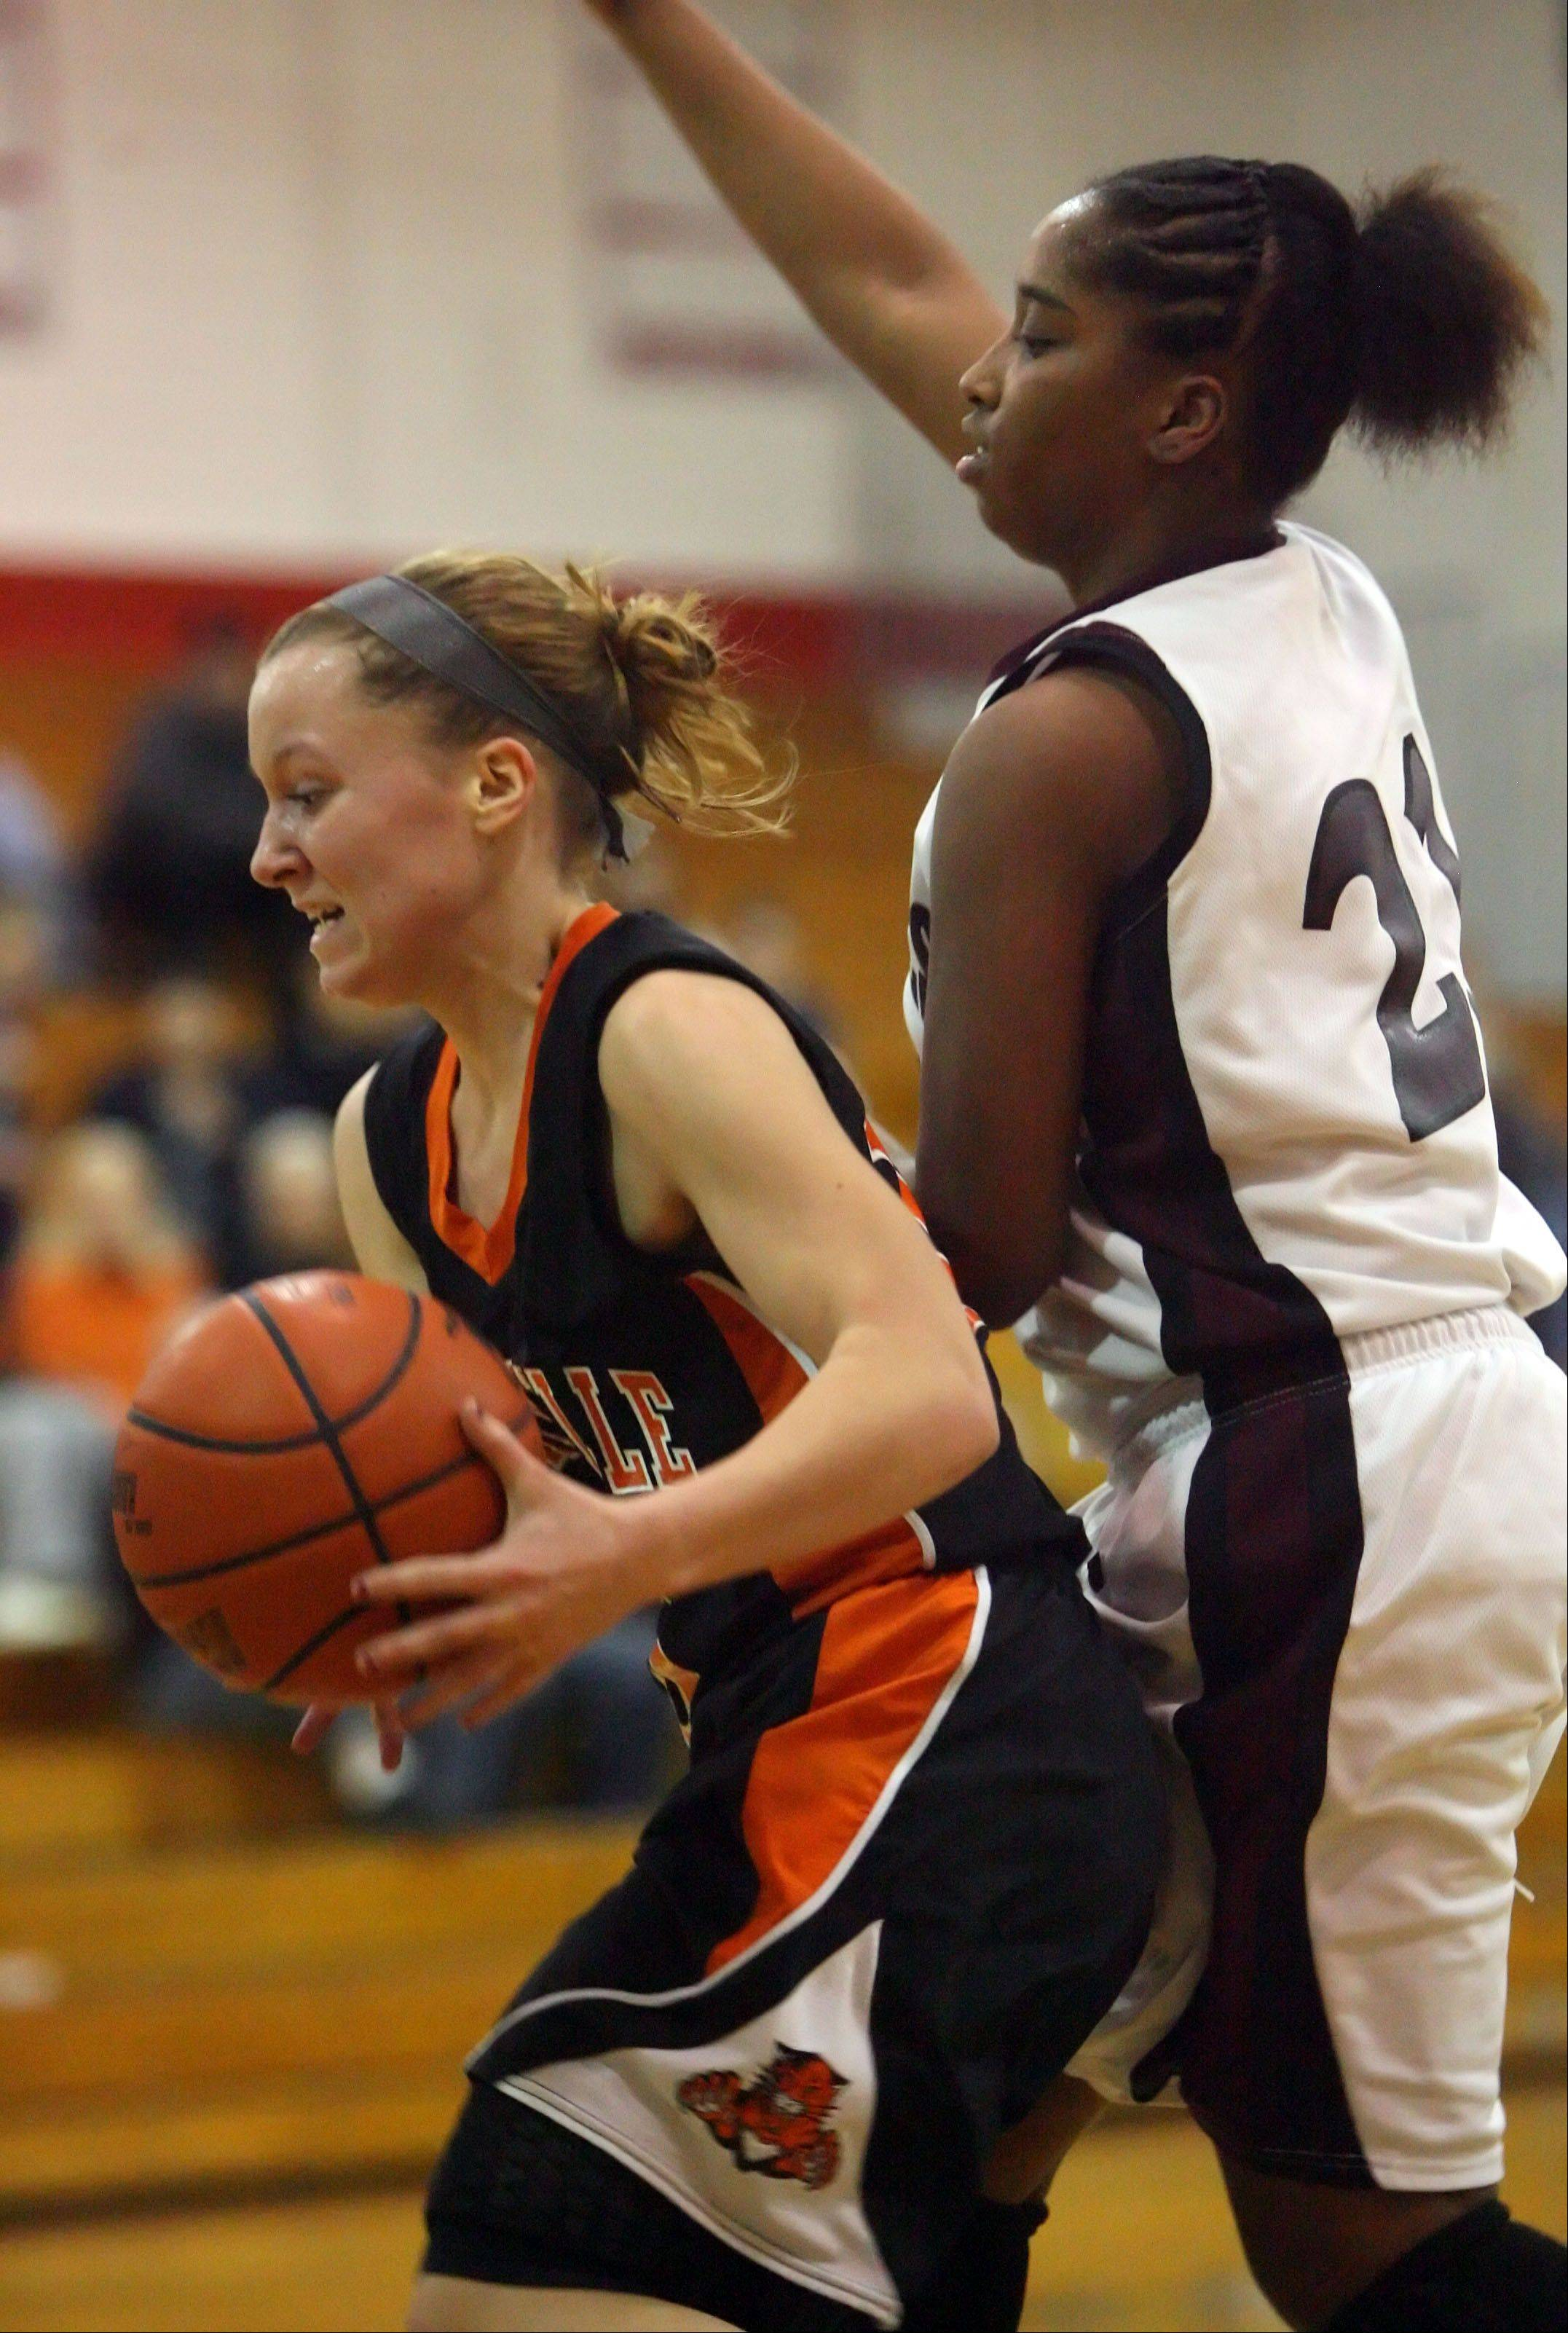 Images from the Zion-Benton vs. Libertyville girls basketball game Wednesday, Dec. 21 in Mundelein.